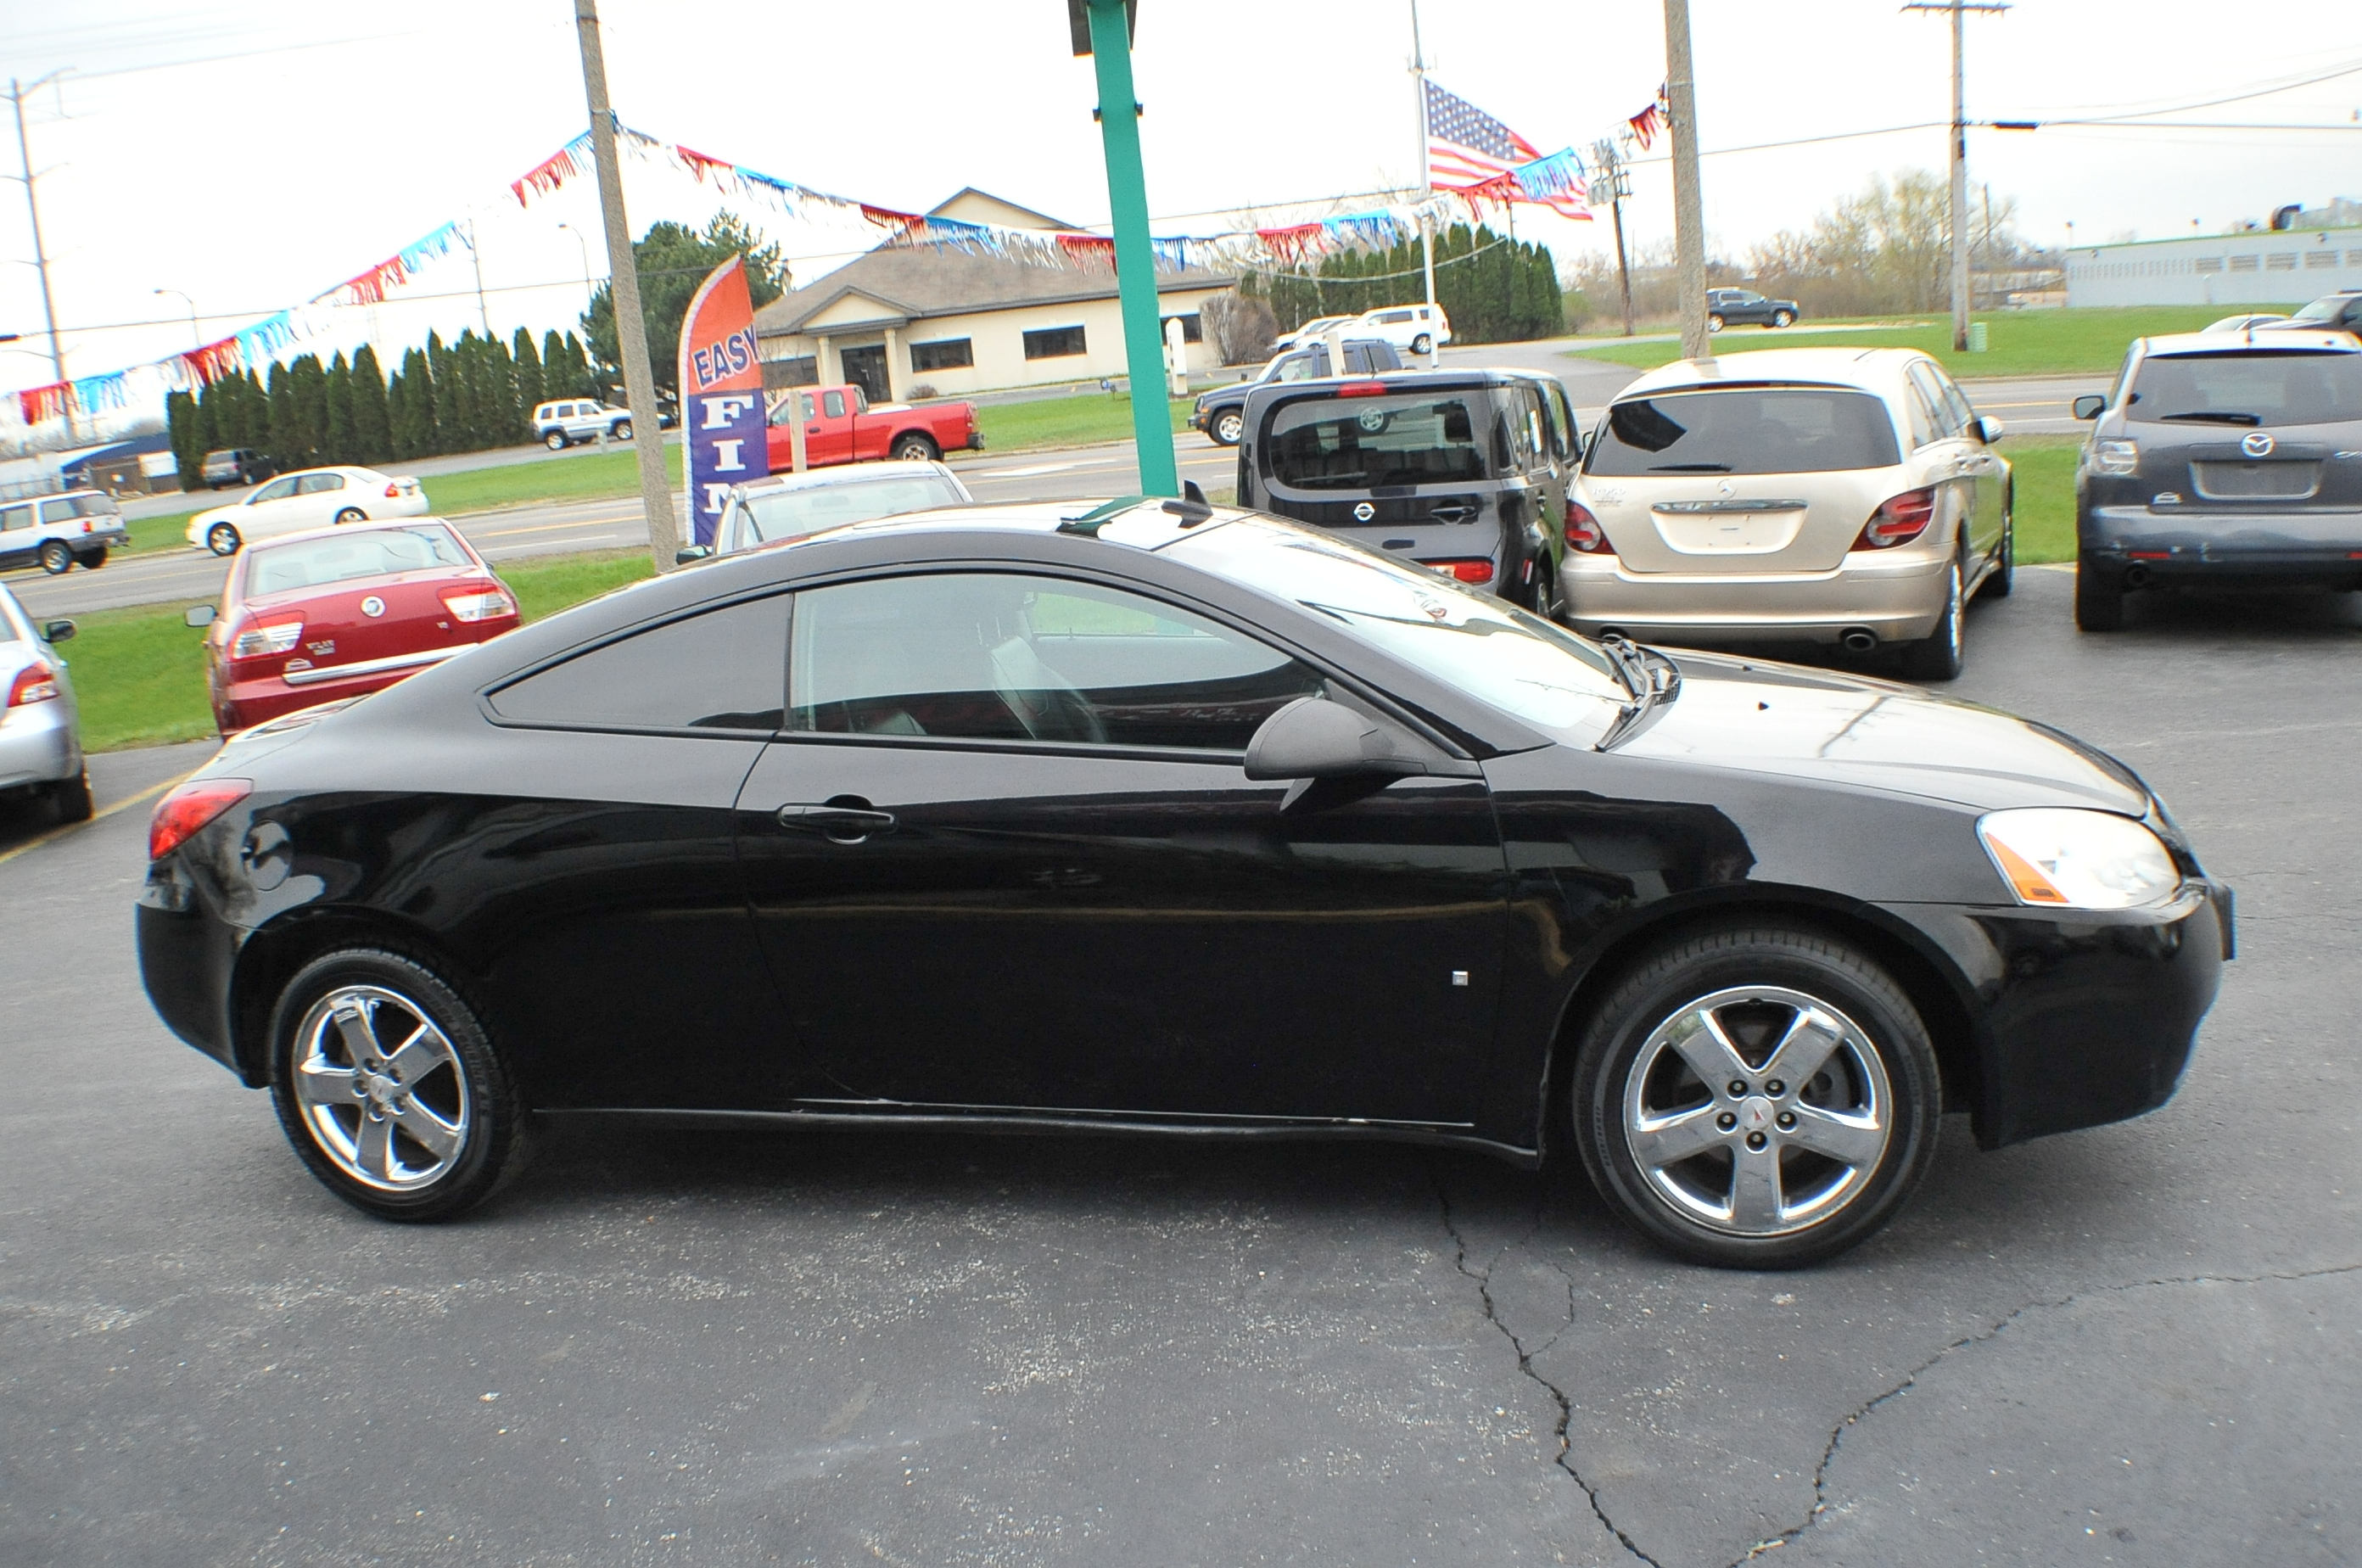 2008 pontiac g6 black gt coupe used car sale. Black Bedroom Furniture Sets. Home Design Ideas